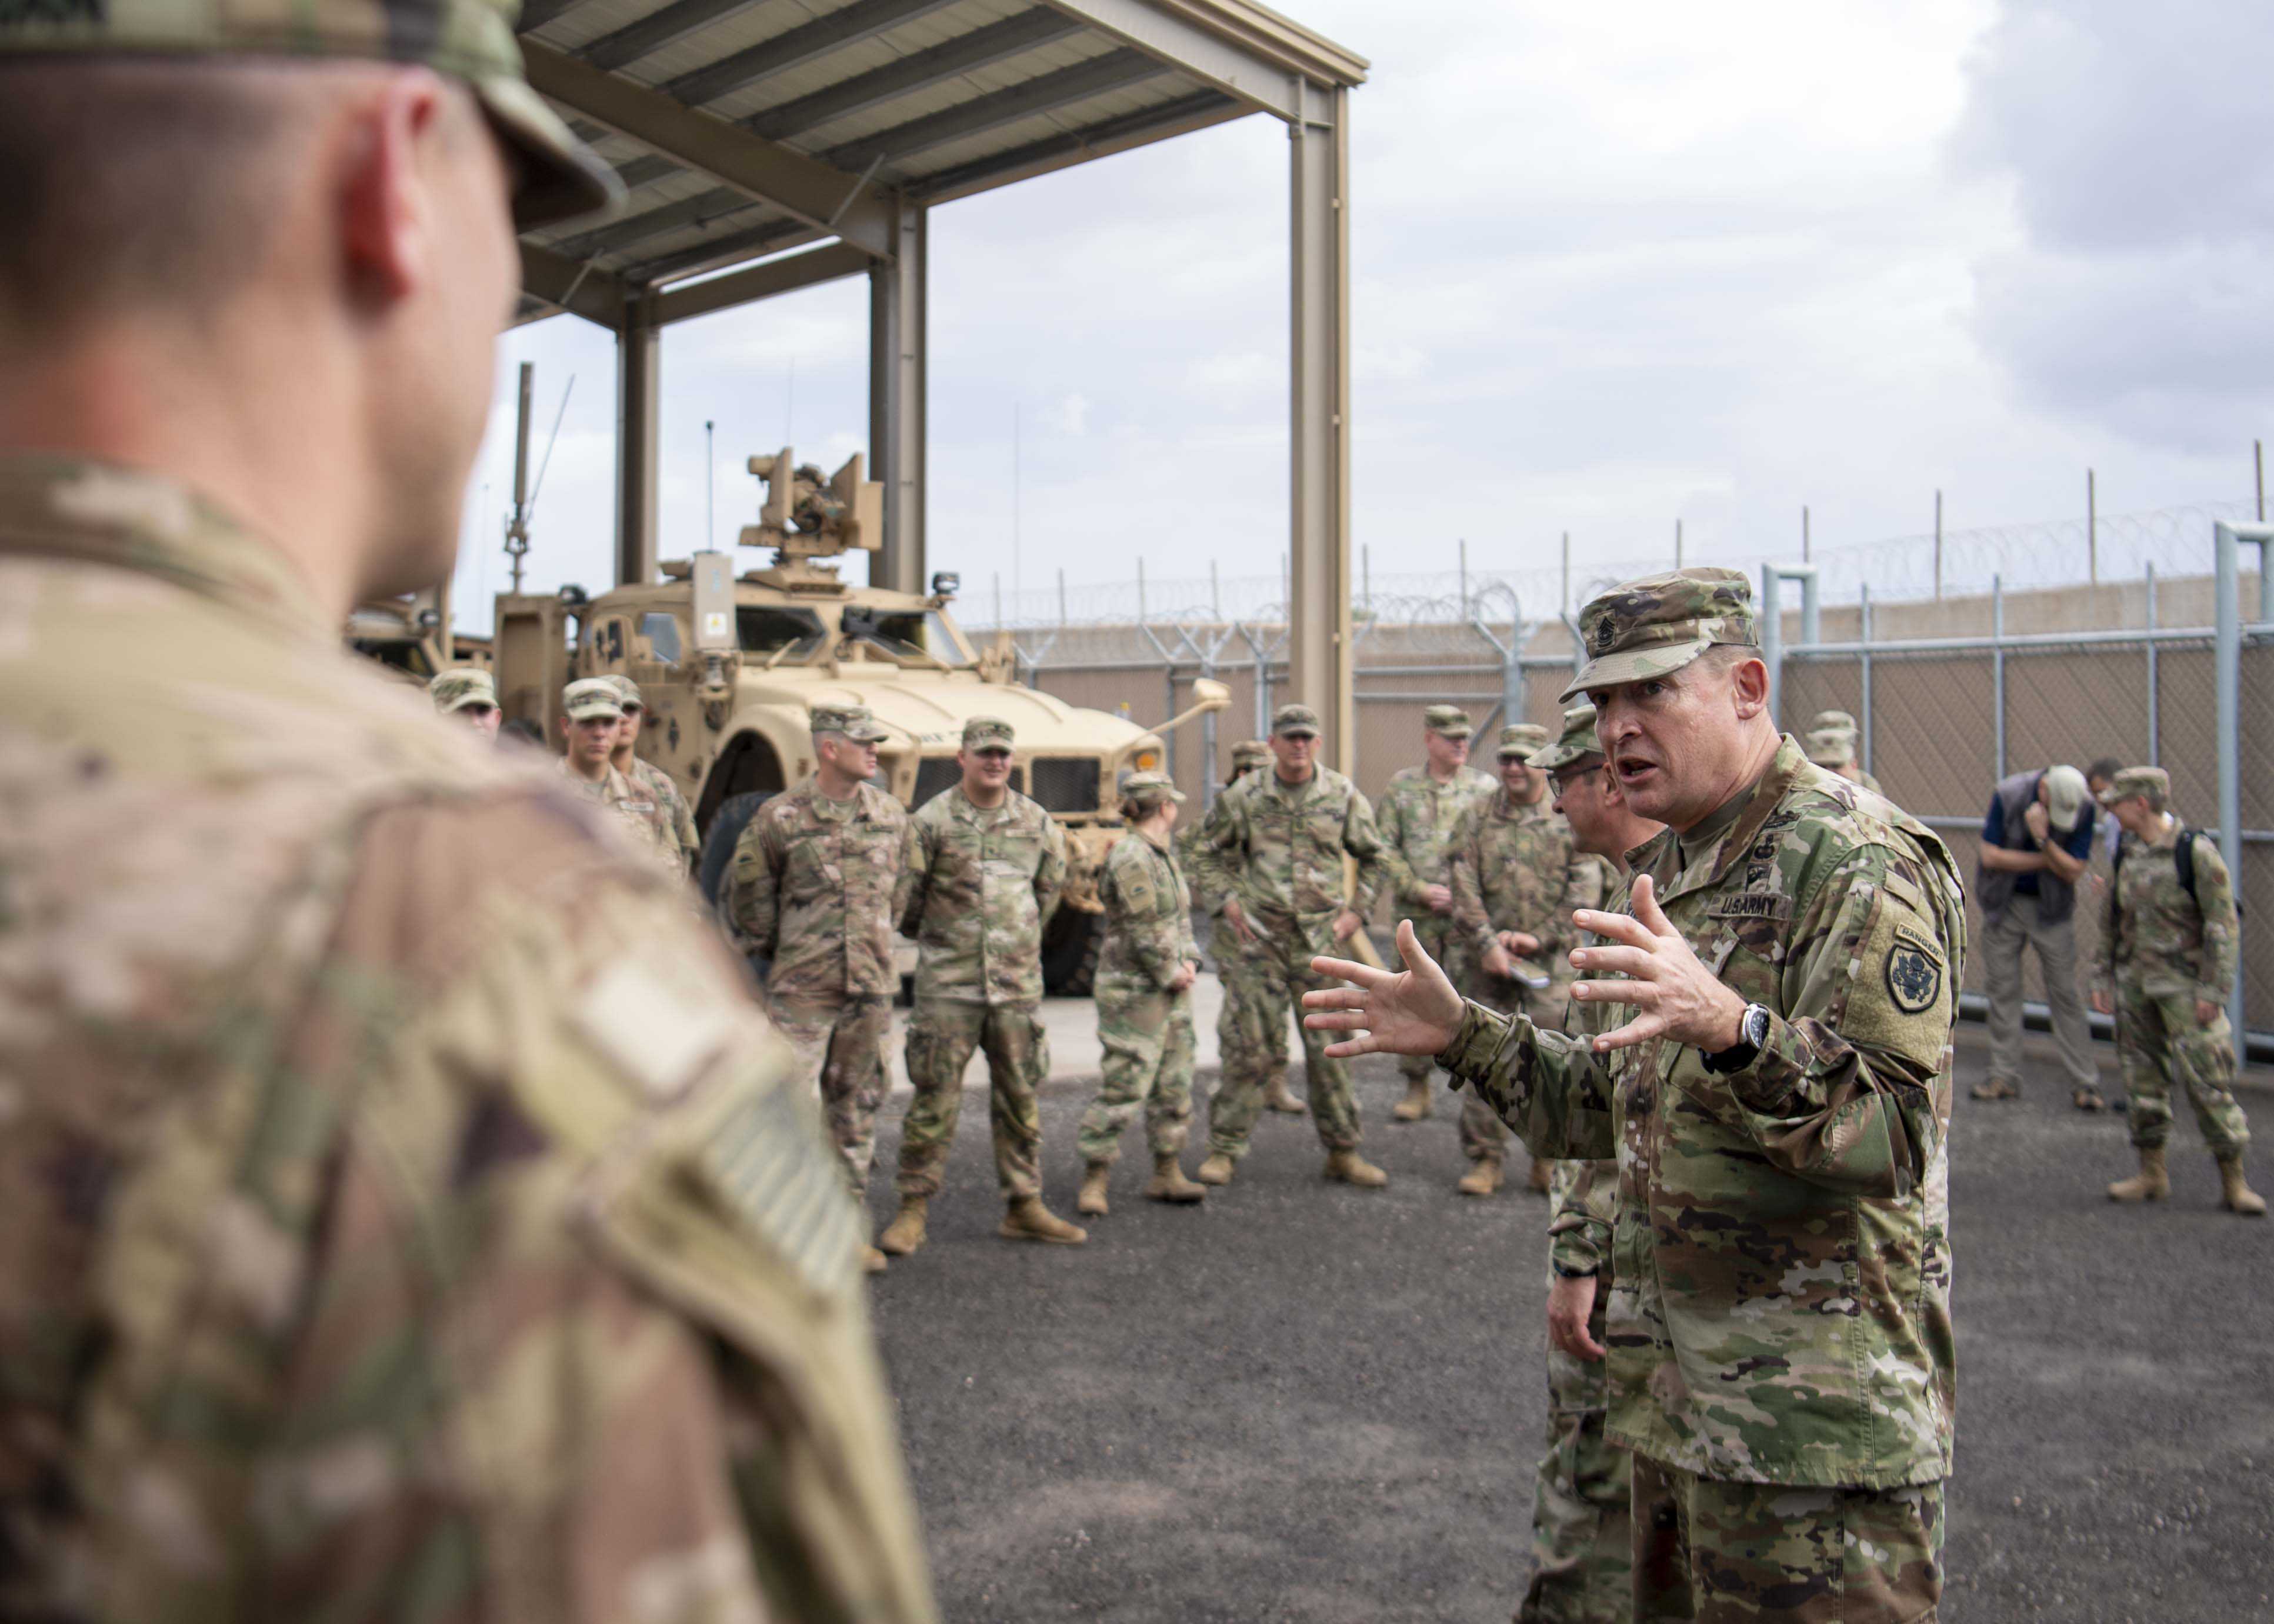 U.S. Army Command Sgt. Maj. Christopher Kepner, senior enlisted advisor to the Chief, National Guard Bureau, speaks to U.S. soldiers assigned to Combined Joint Task Force-Horn of Africa, Task Force-Guardian at Camp Lemonnier, Djibouti, Nov. 28, 2019. Kepner visited Camp Lemonnier to meet with deployed National Guardsmen and other service members. (U.S. Air Force photo by Staff Sgt. J.D. Strong II)